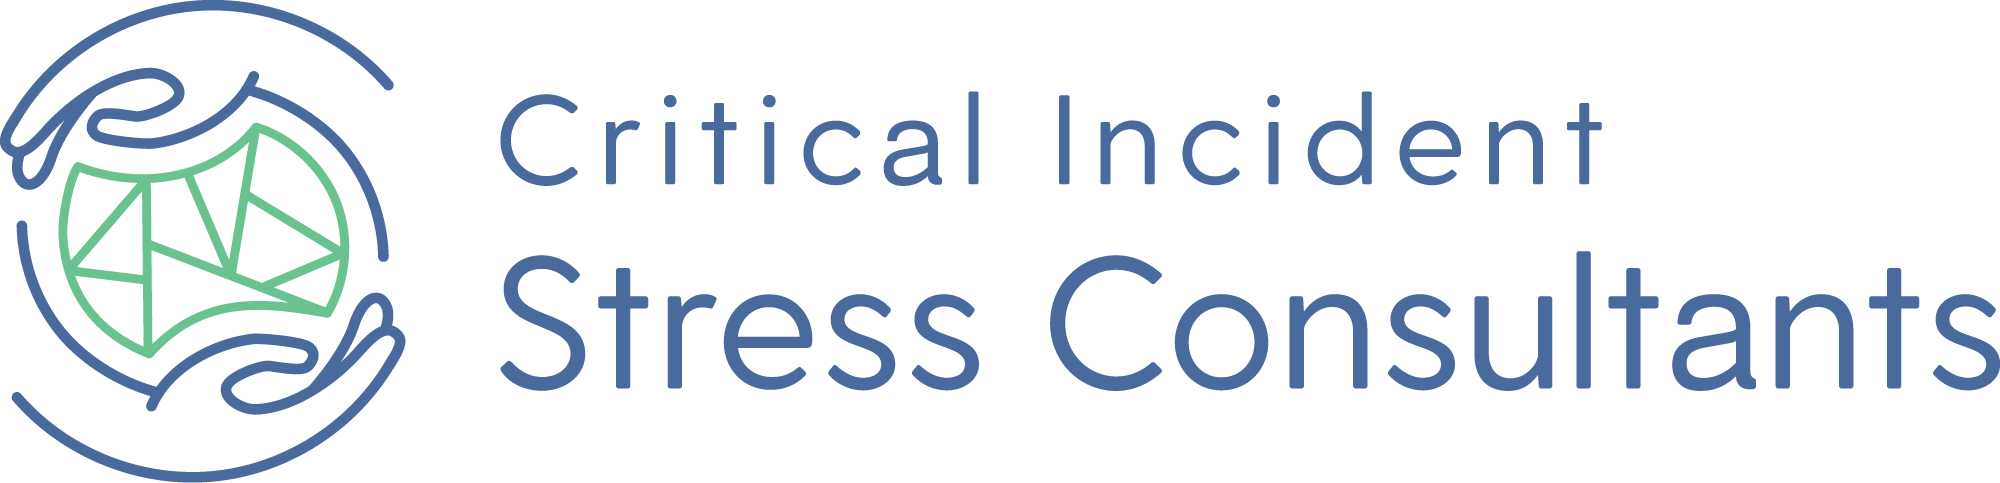 Critical Incident Stress Consultants